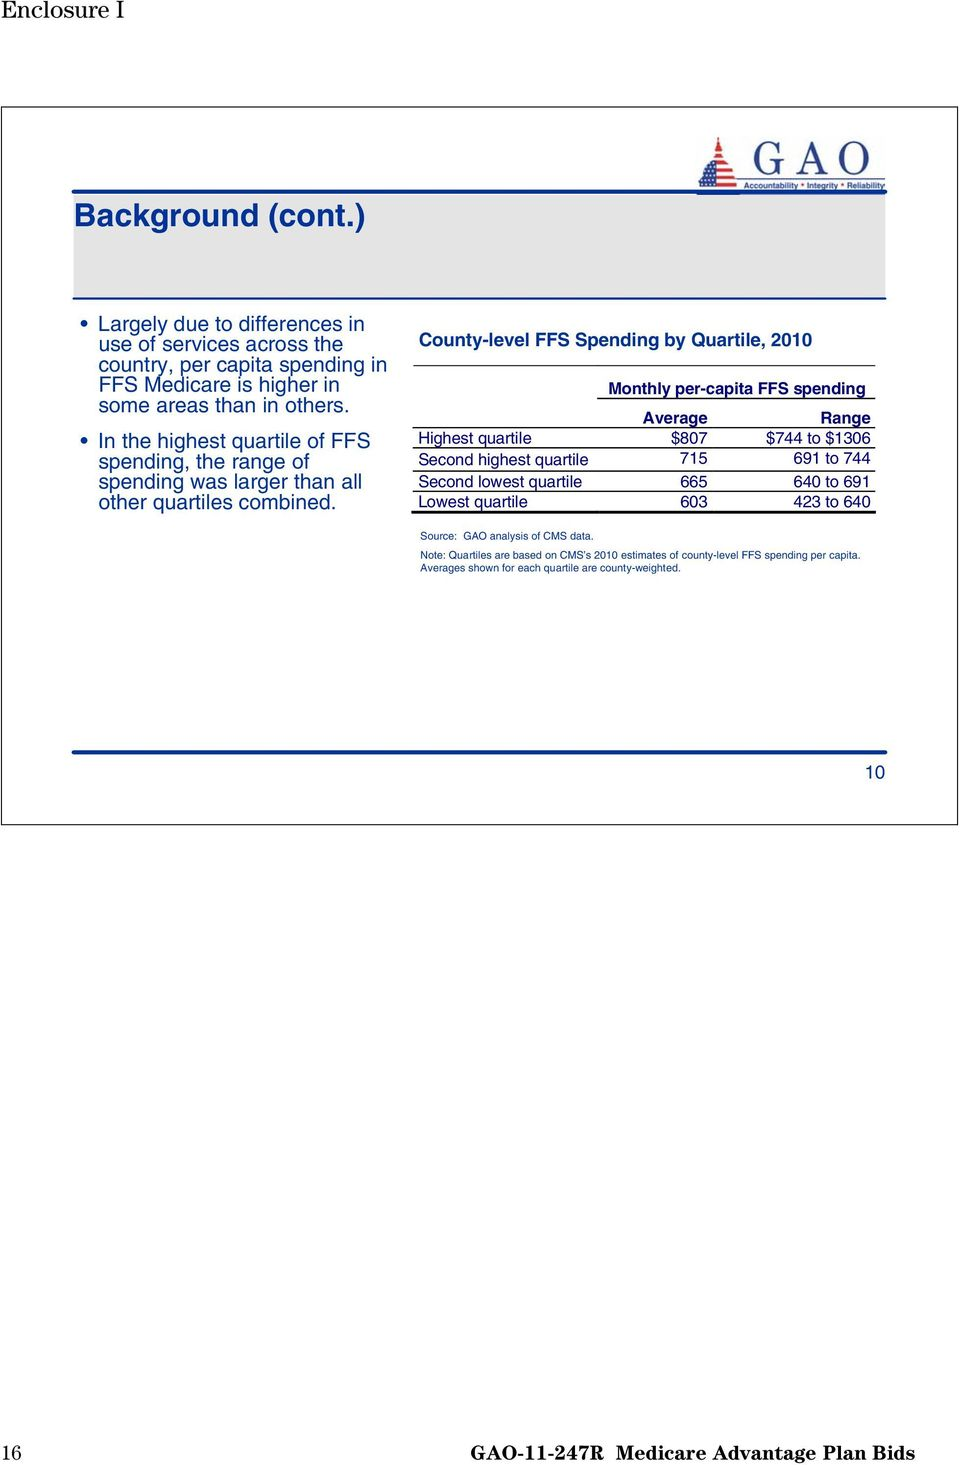 County-level FFS Spending by Quartile, 2010 Monthly per-capita FFS spending Average Range Highest quartile $807 $744 to $1306 Second highest quartile 715 691 to 744 Second